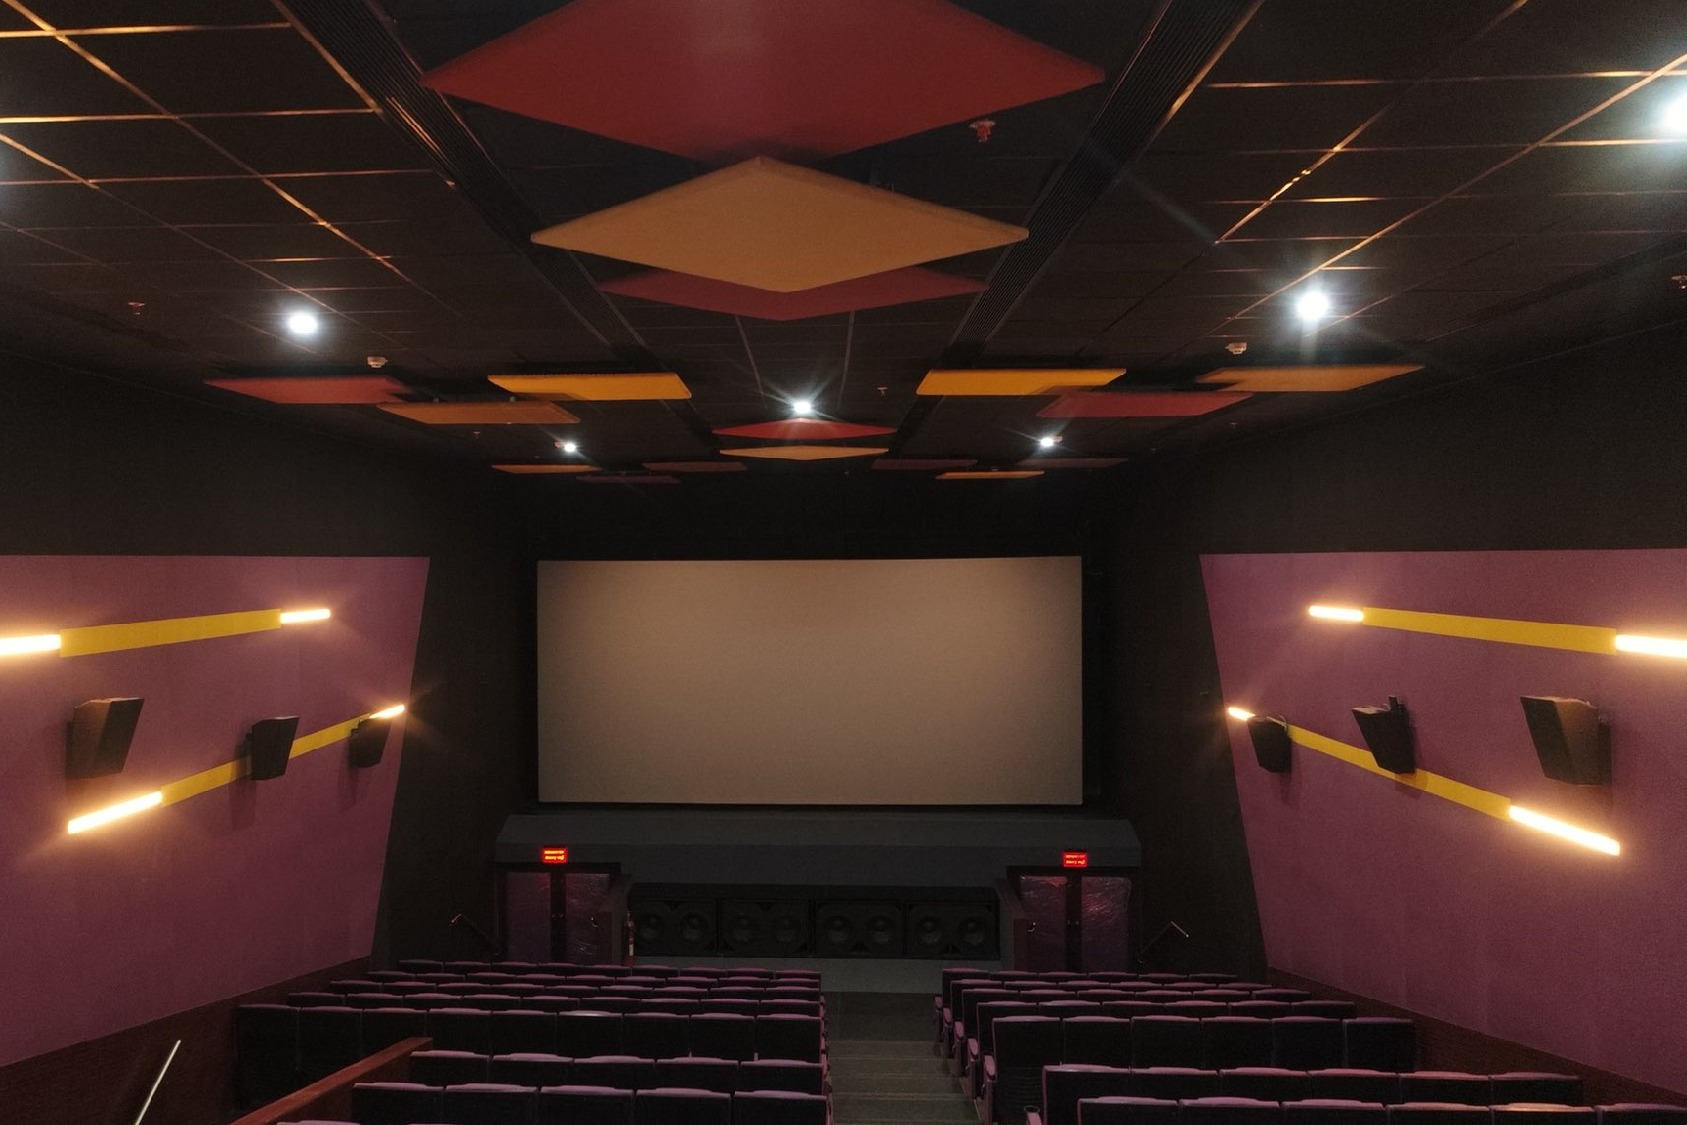 Film Federation Of India writes Centre to hundred percent occupancy in theaters